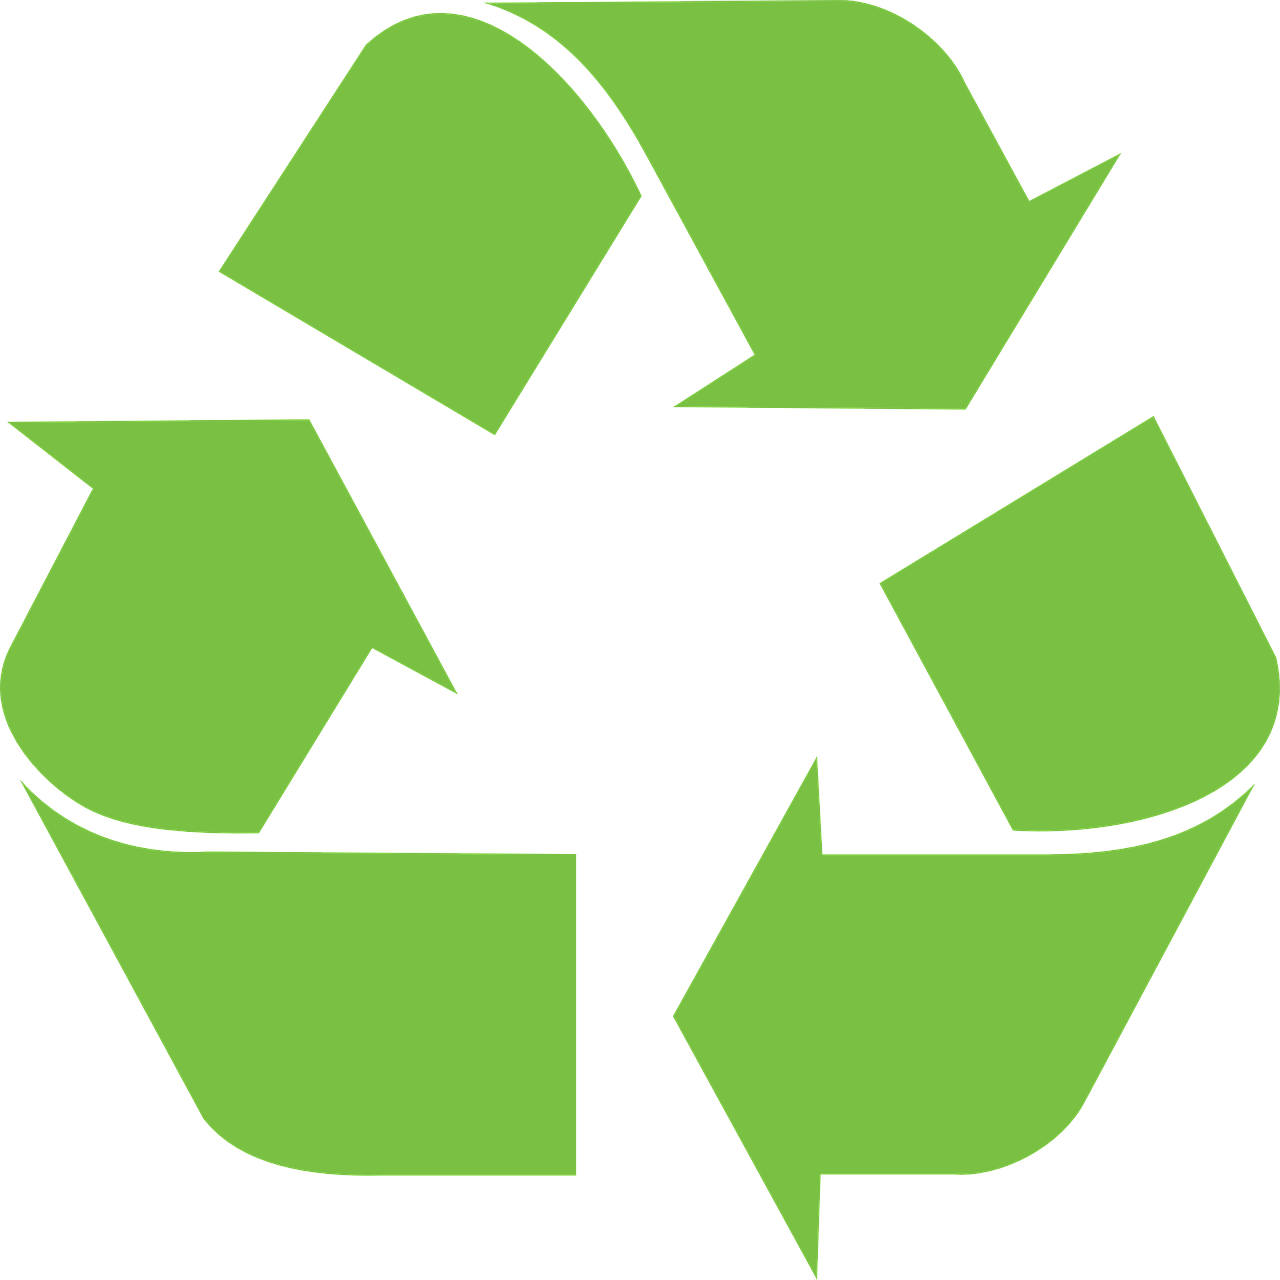 Government Announces Plans to Improve Recycling and Waste System